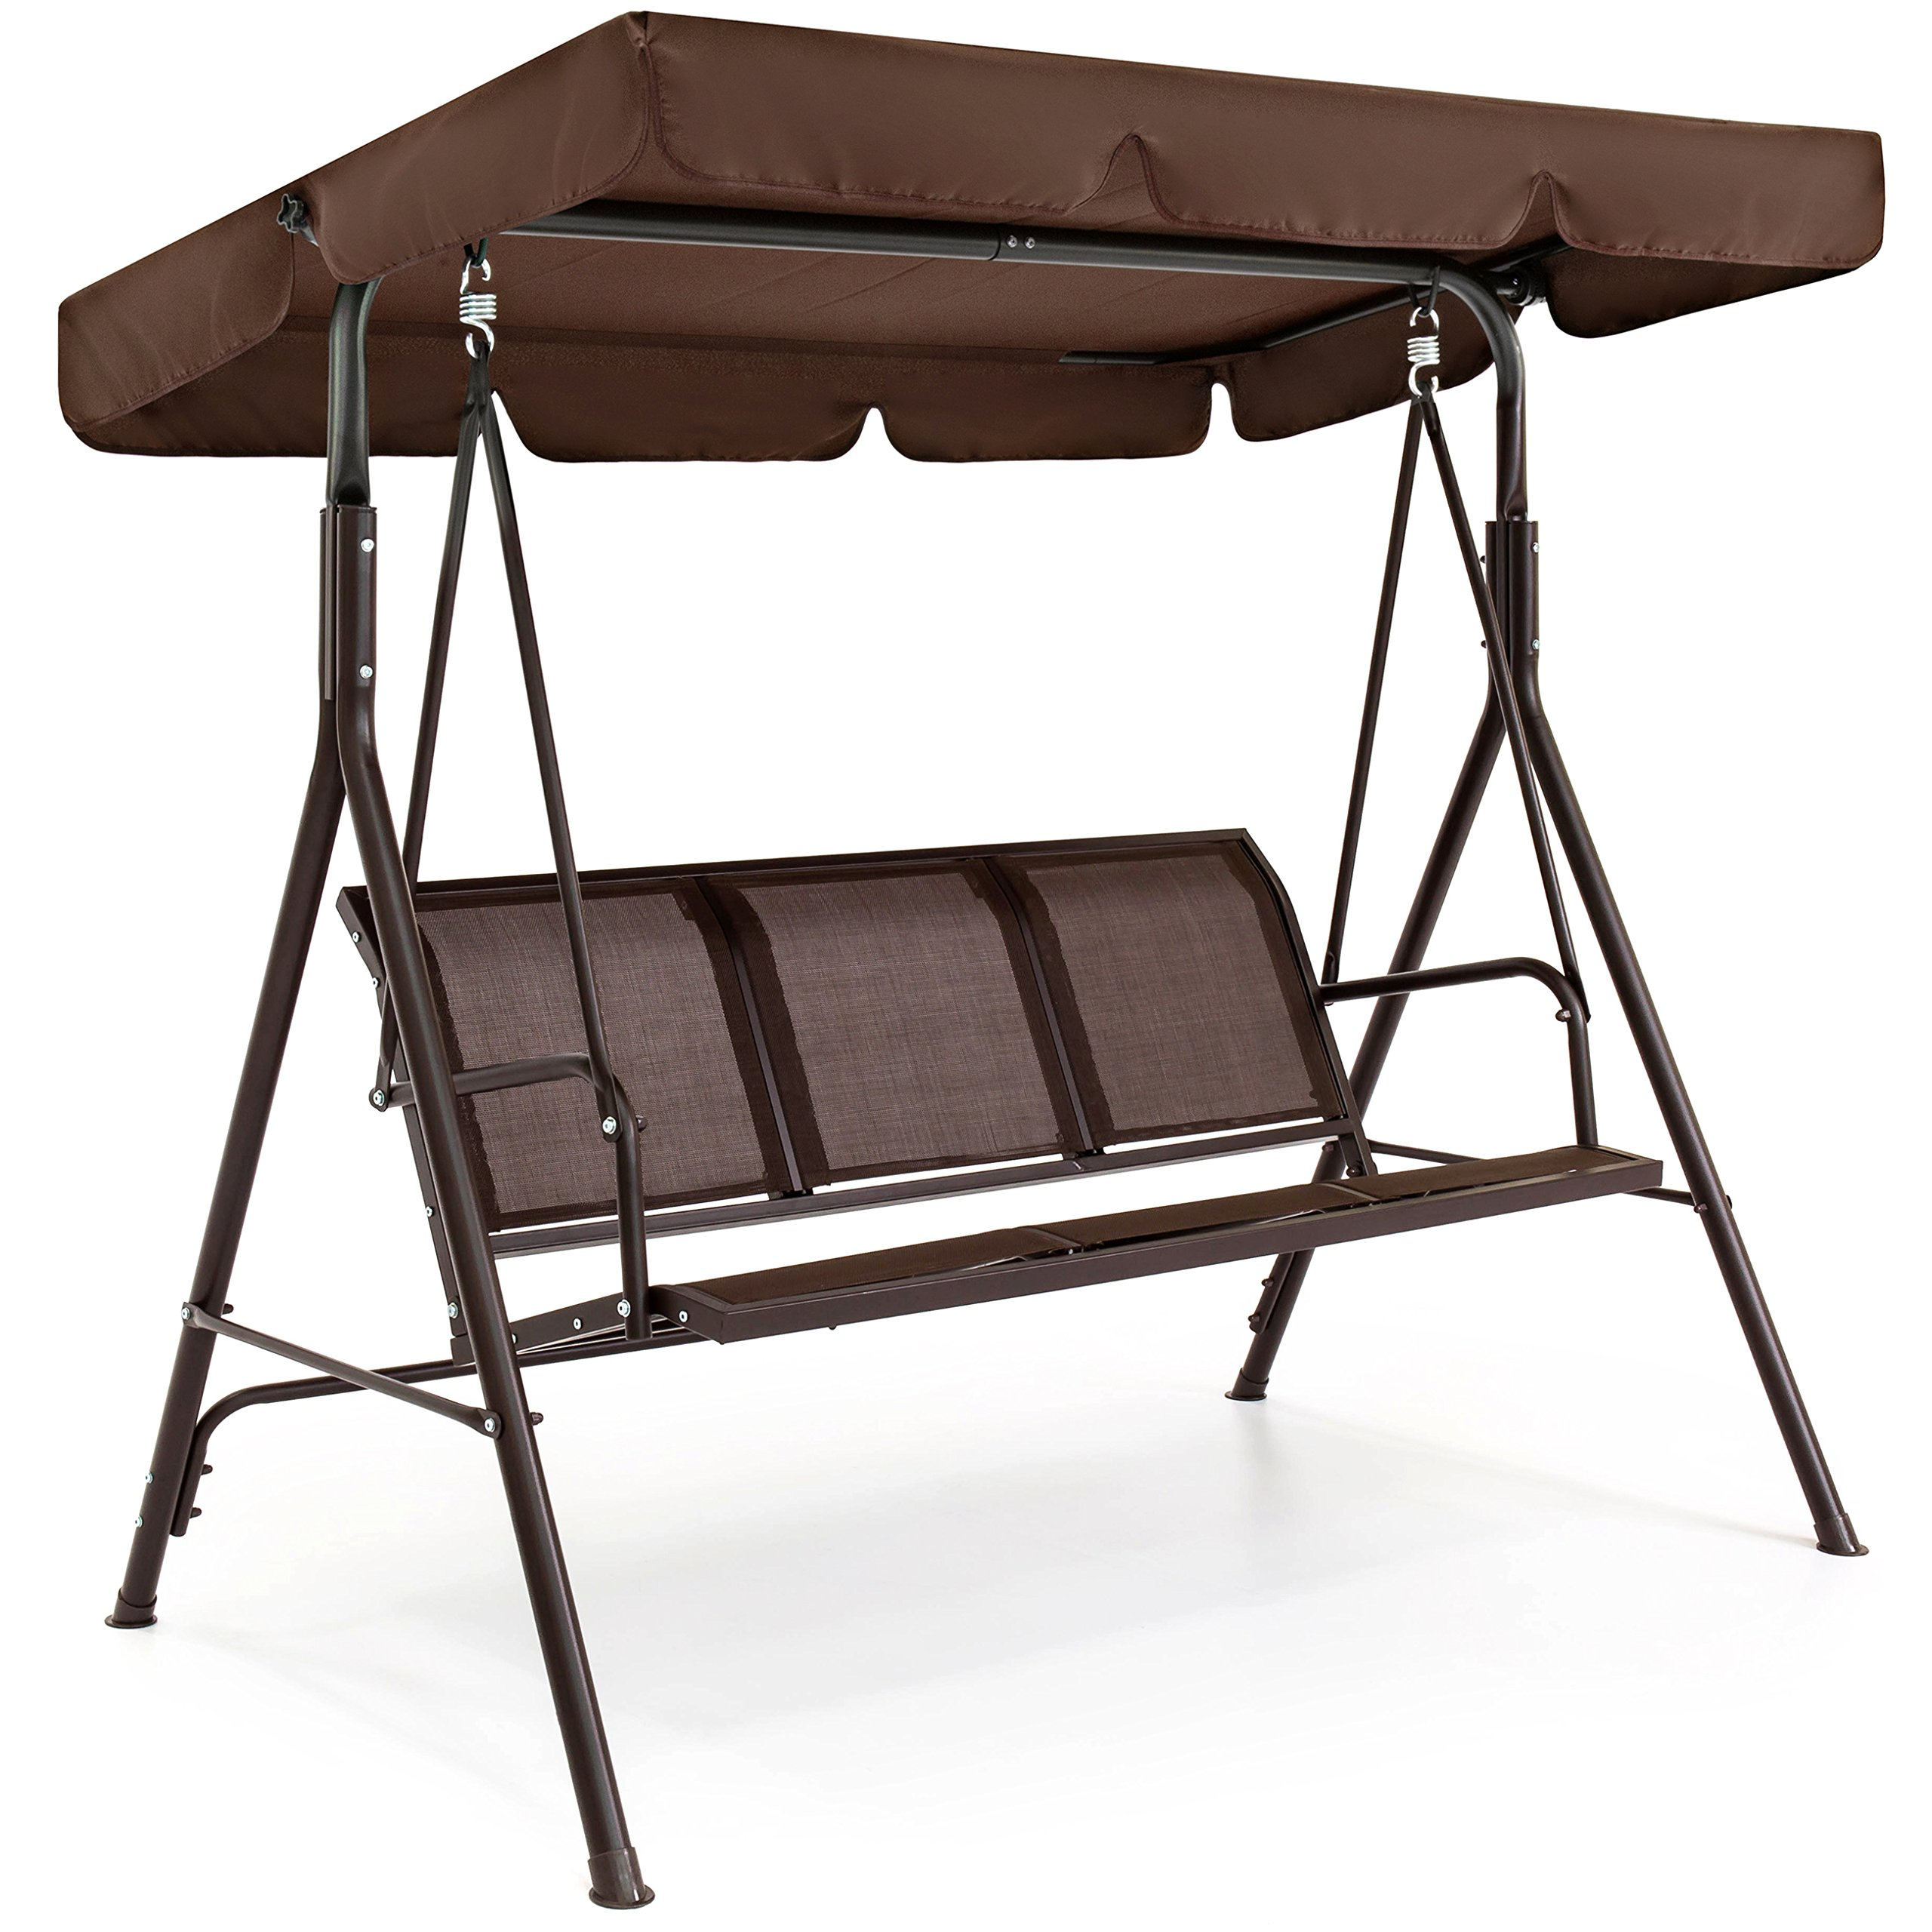 Best Choice Products 2-Person Outdoor Steel Polyester Convertible Canopy Swing Chair Bench with Weather-Resistant Powder Finish, Brown by Best Choice Products